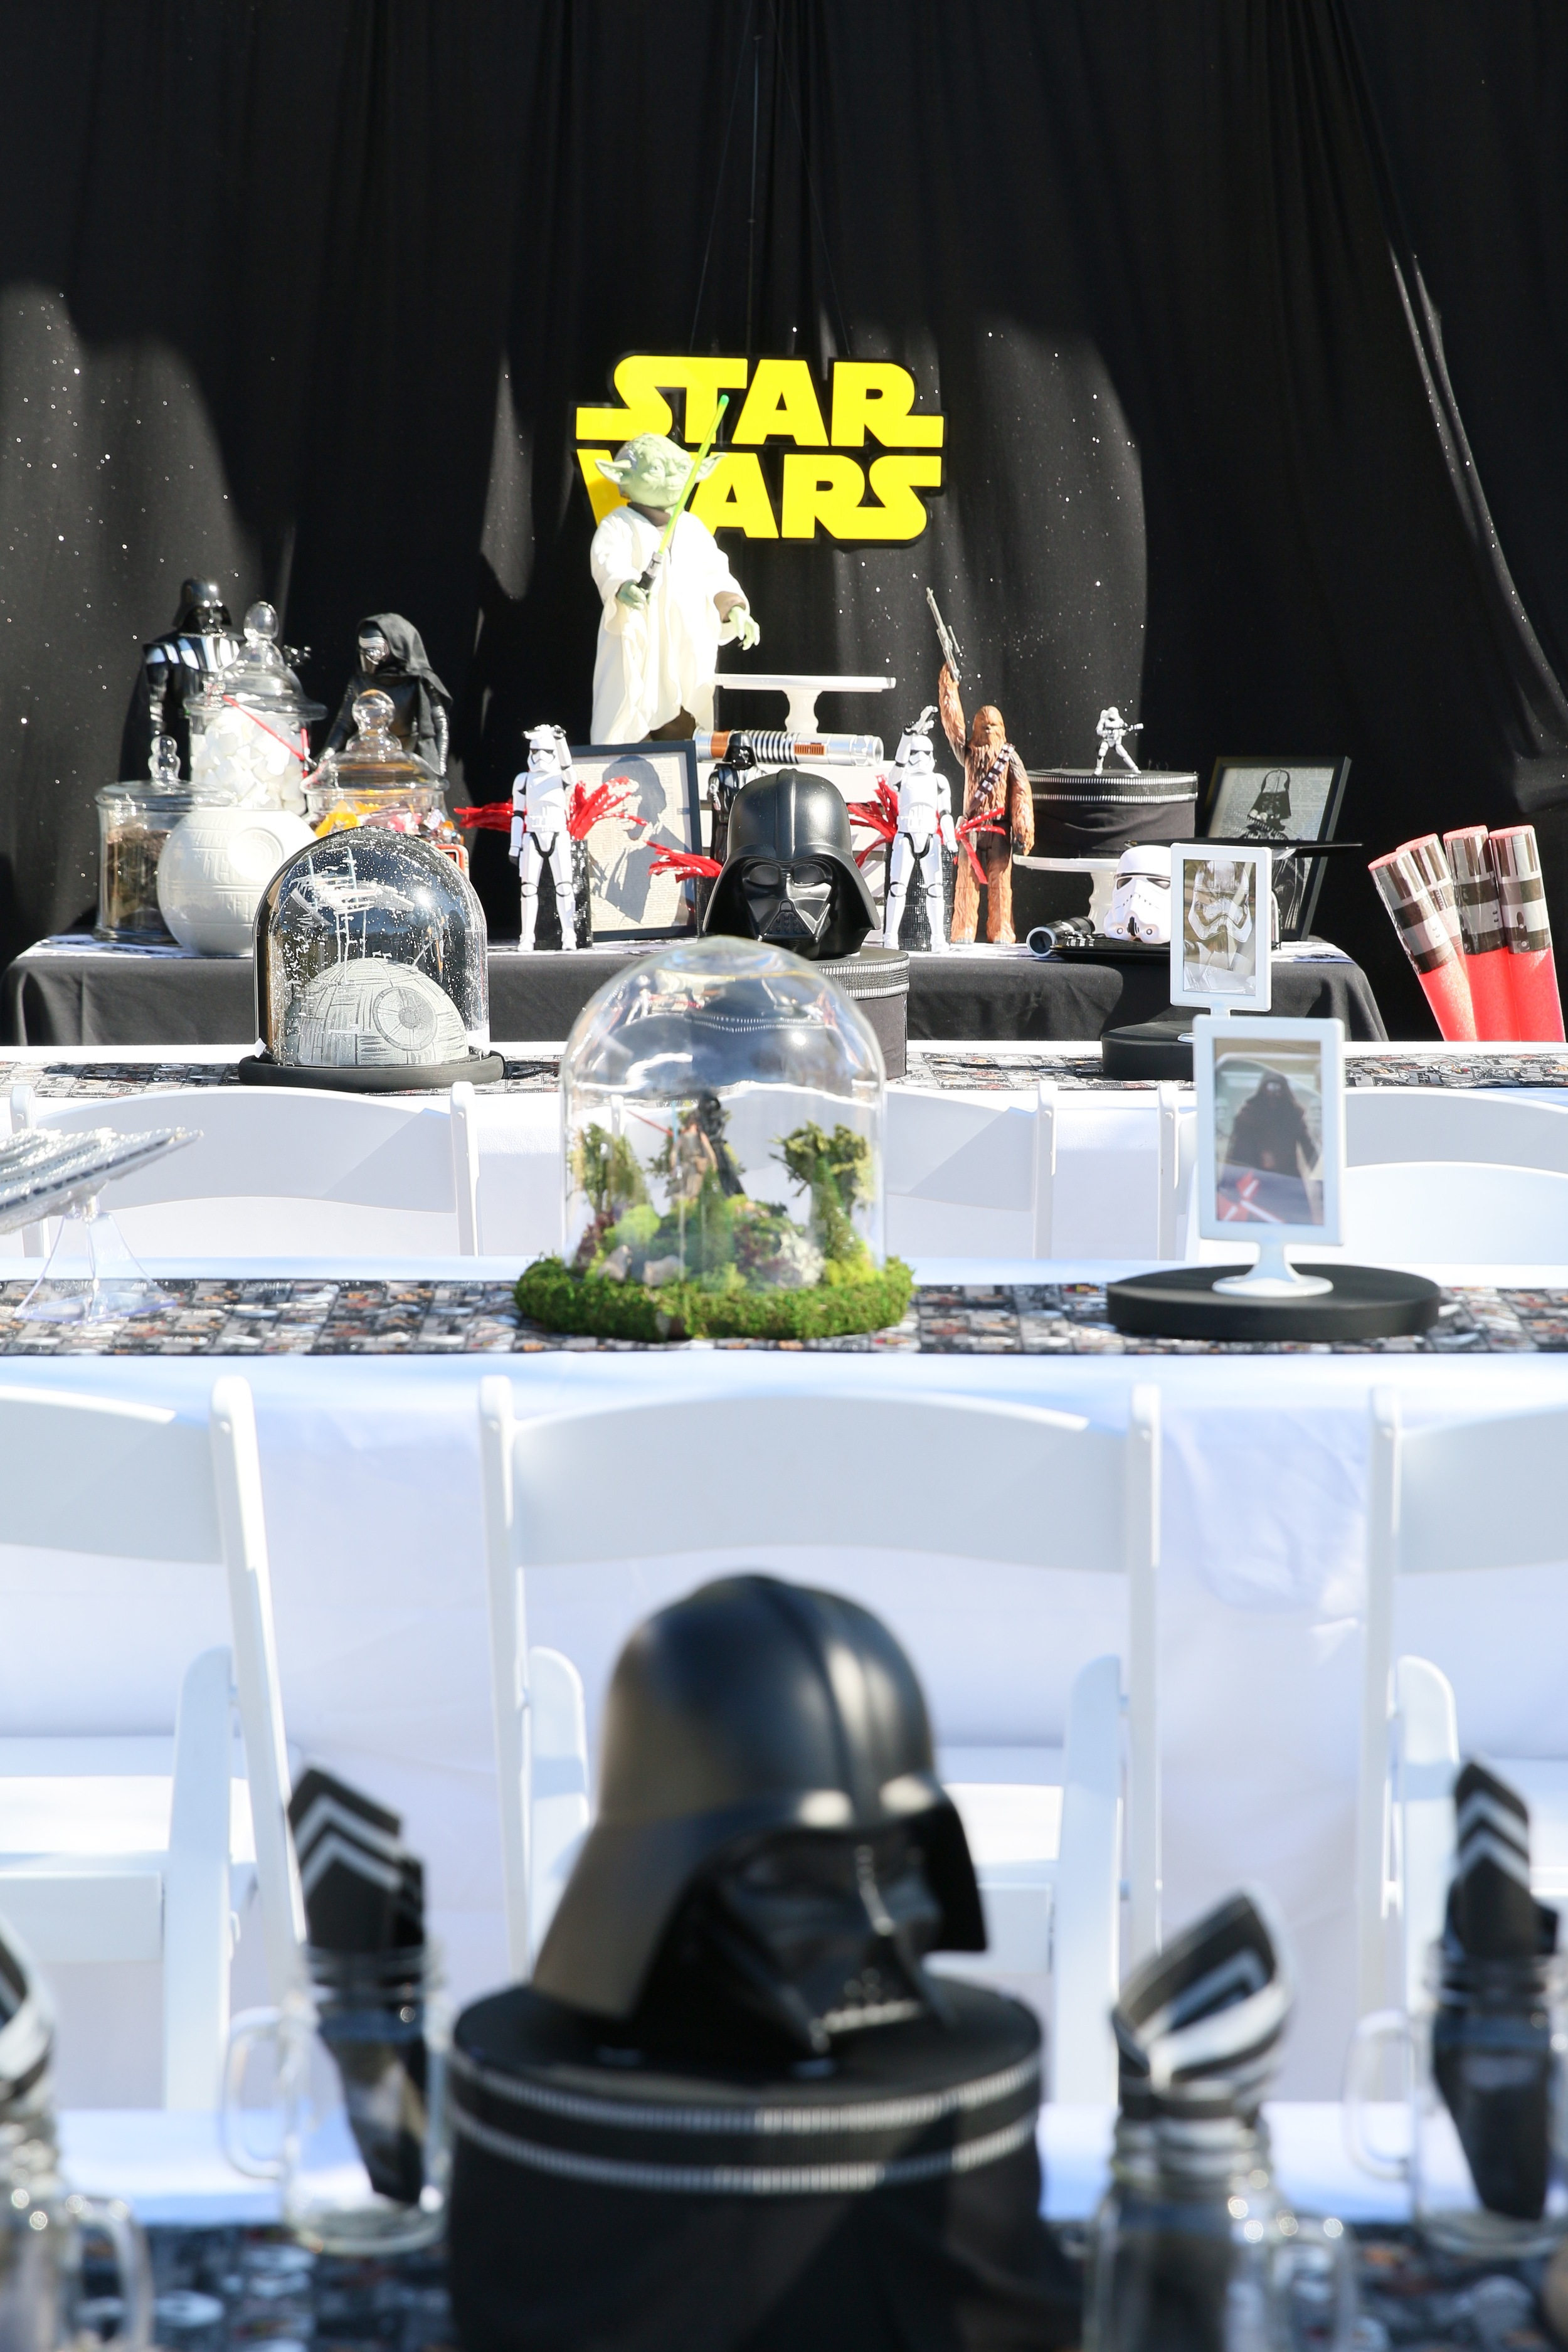 Copy of This Star Wars party rental collection will awaken the force in all party guests! Star Wars action figures, signage, linens, and centerpieces are all included to make your party planning simple!